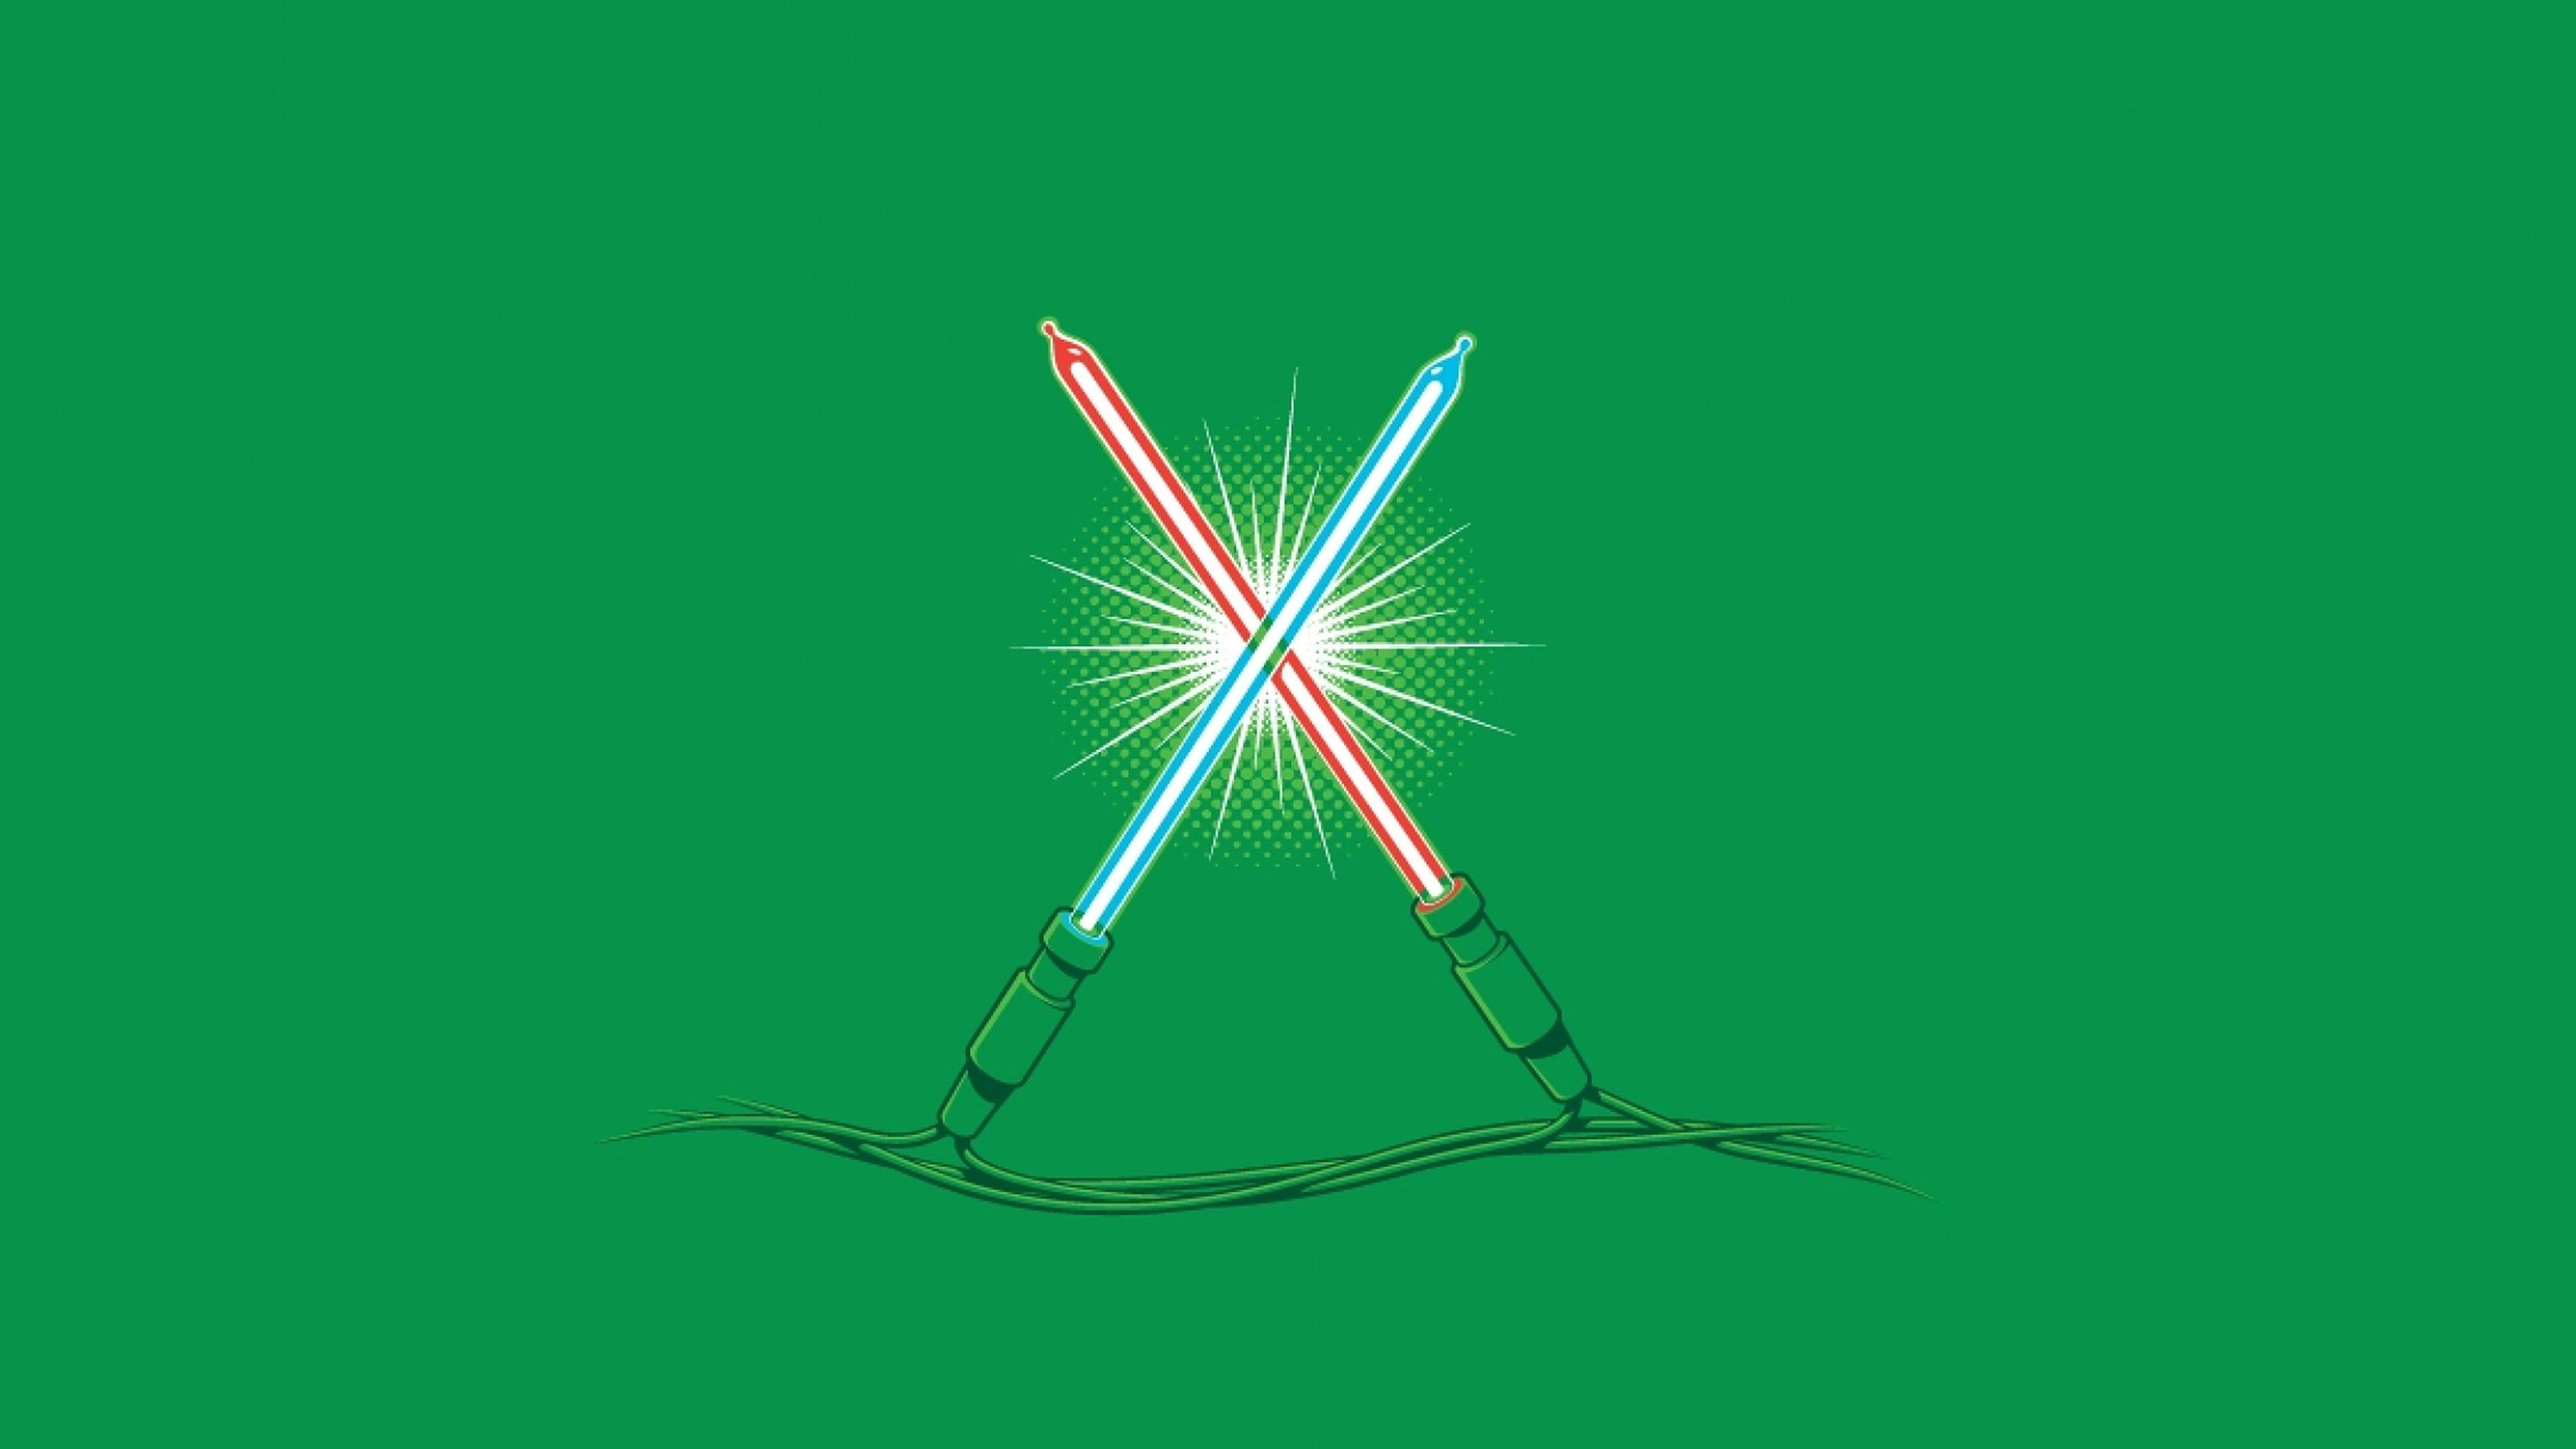 ag26-christmas-lights-illust-minimal-starwars-art-wallpaper